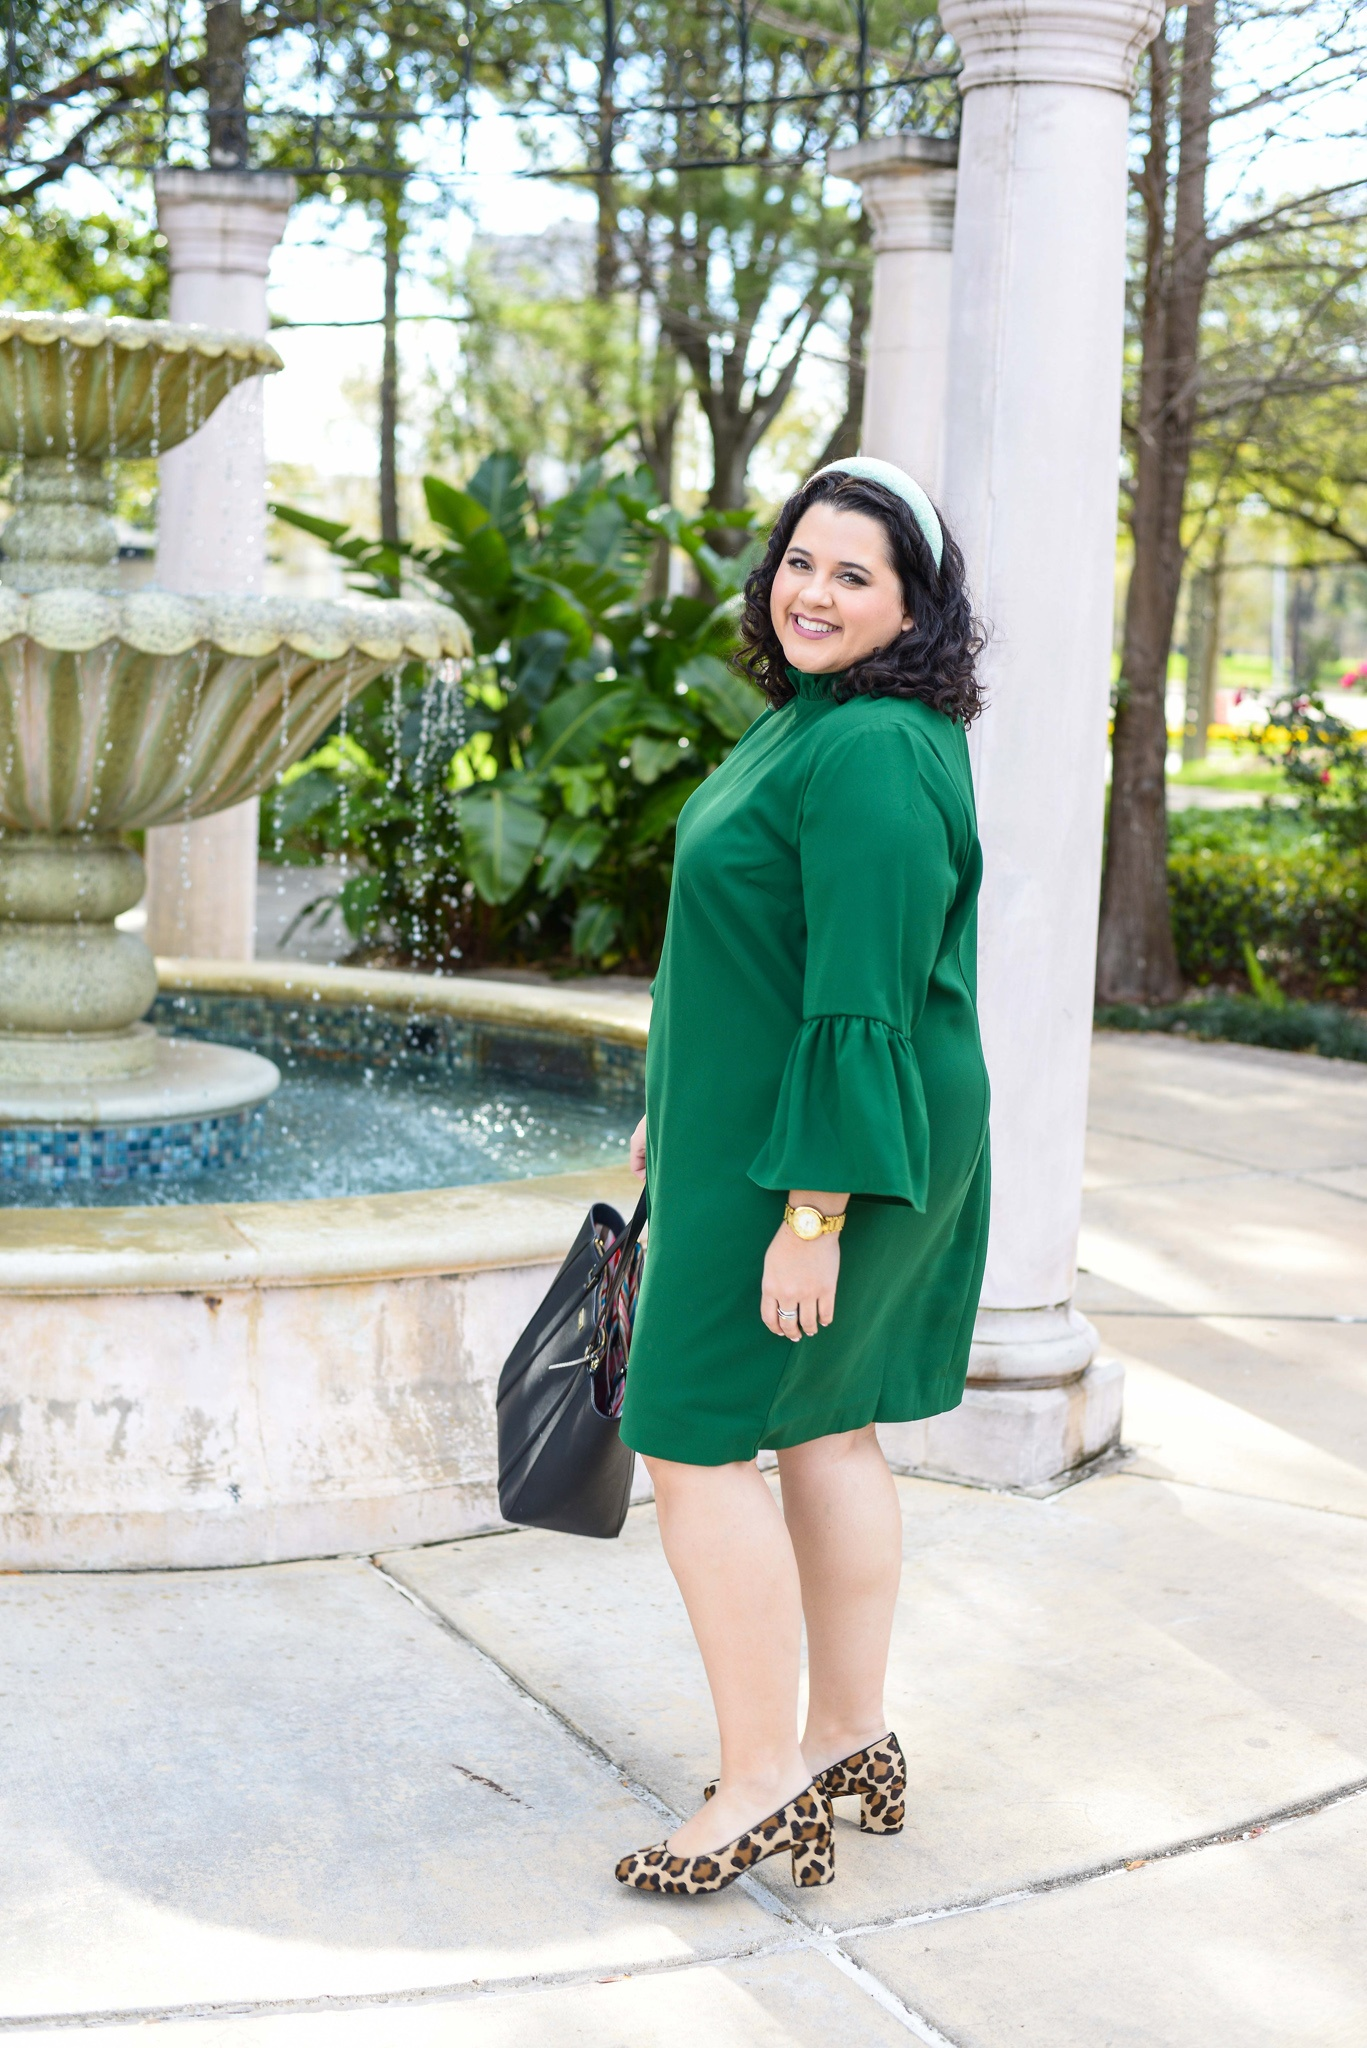 Today on SGSB, I'm sharing what I'm planning to wear to my business casual office for St. Patrick's Day